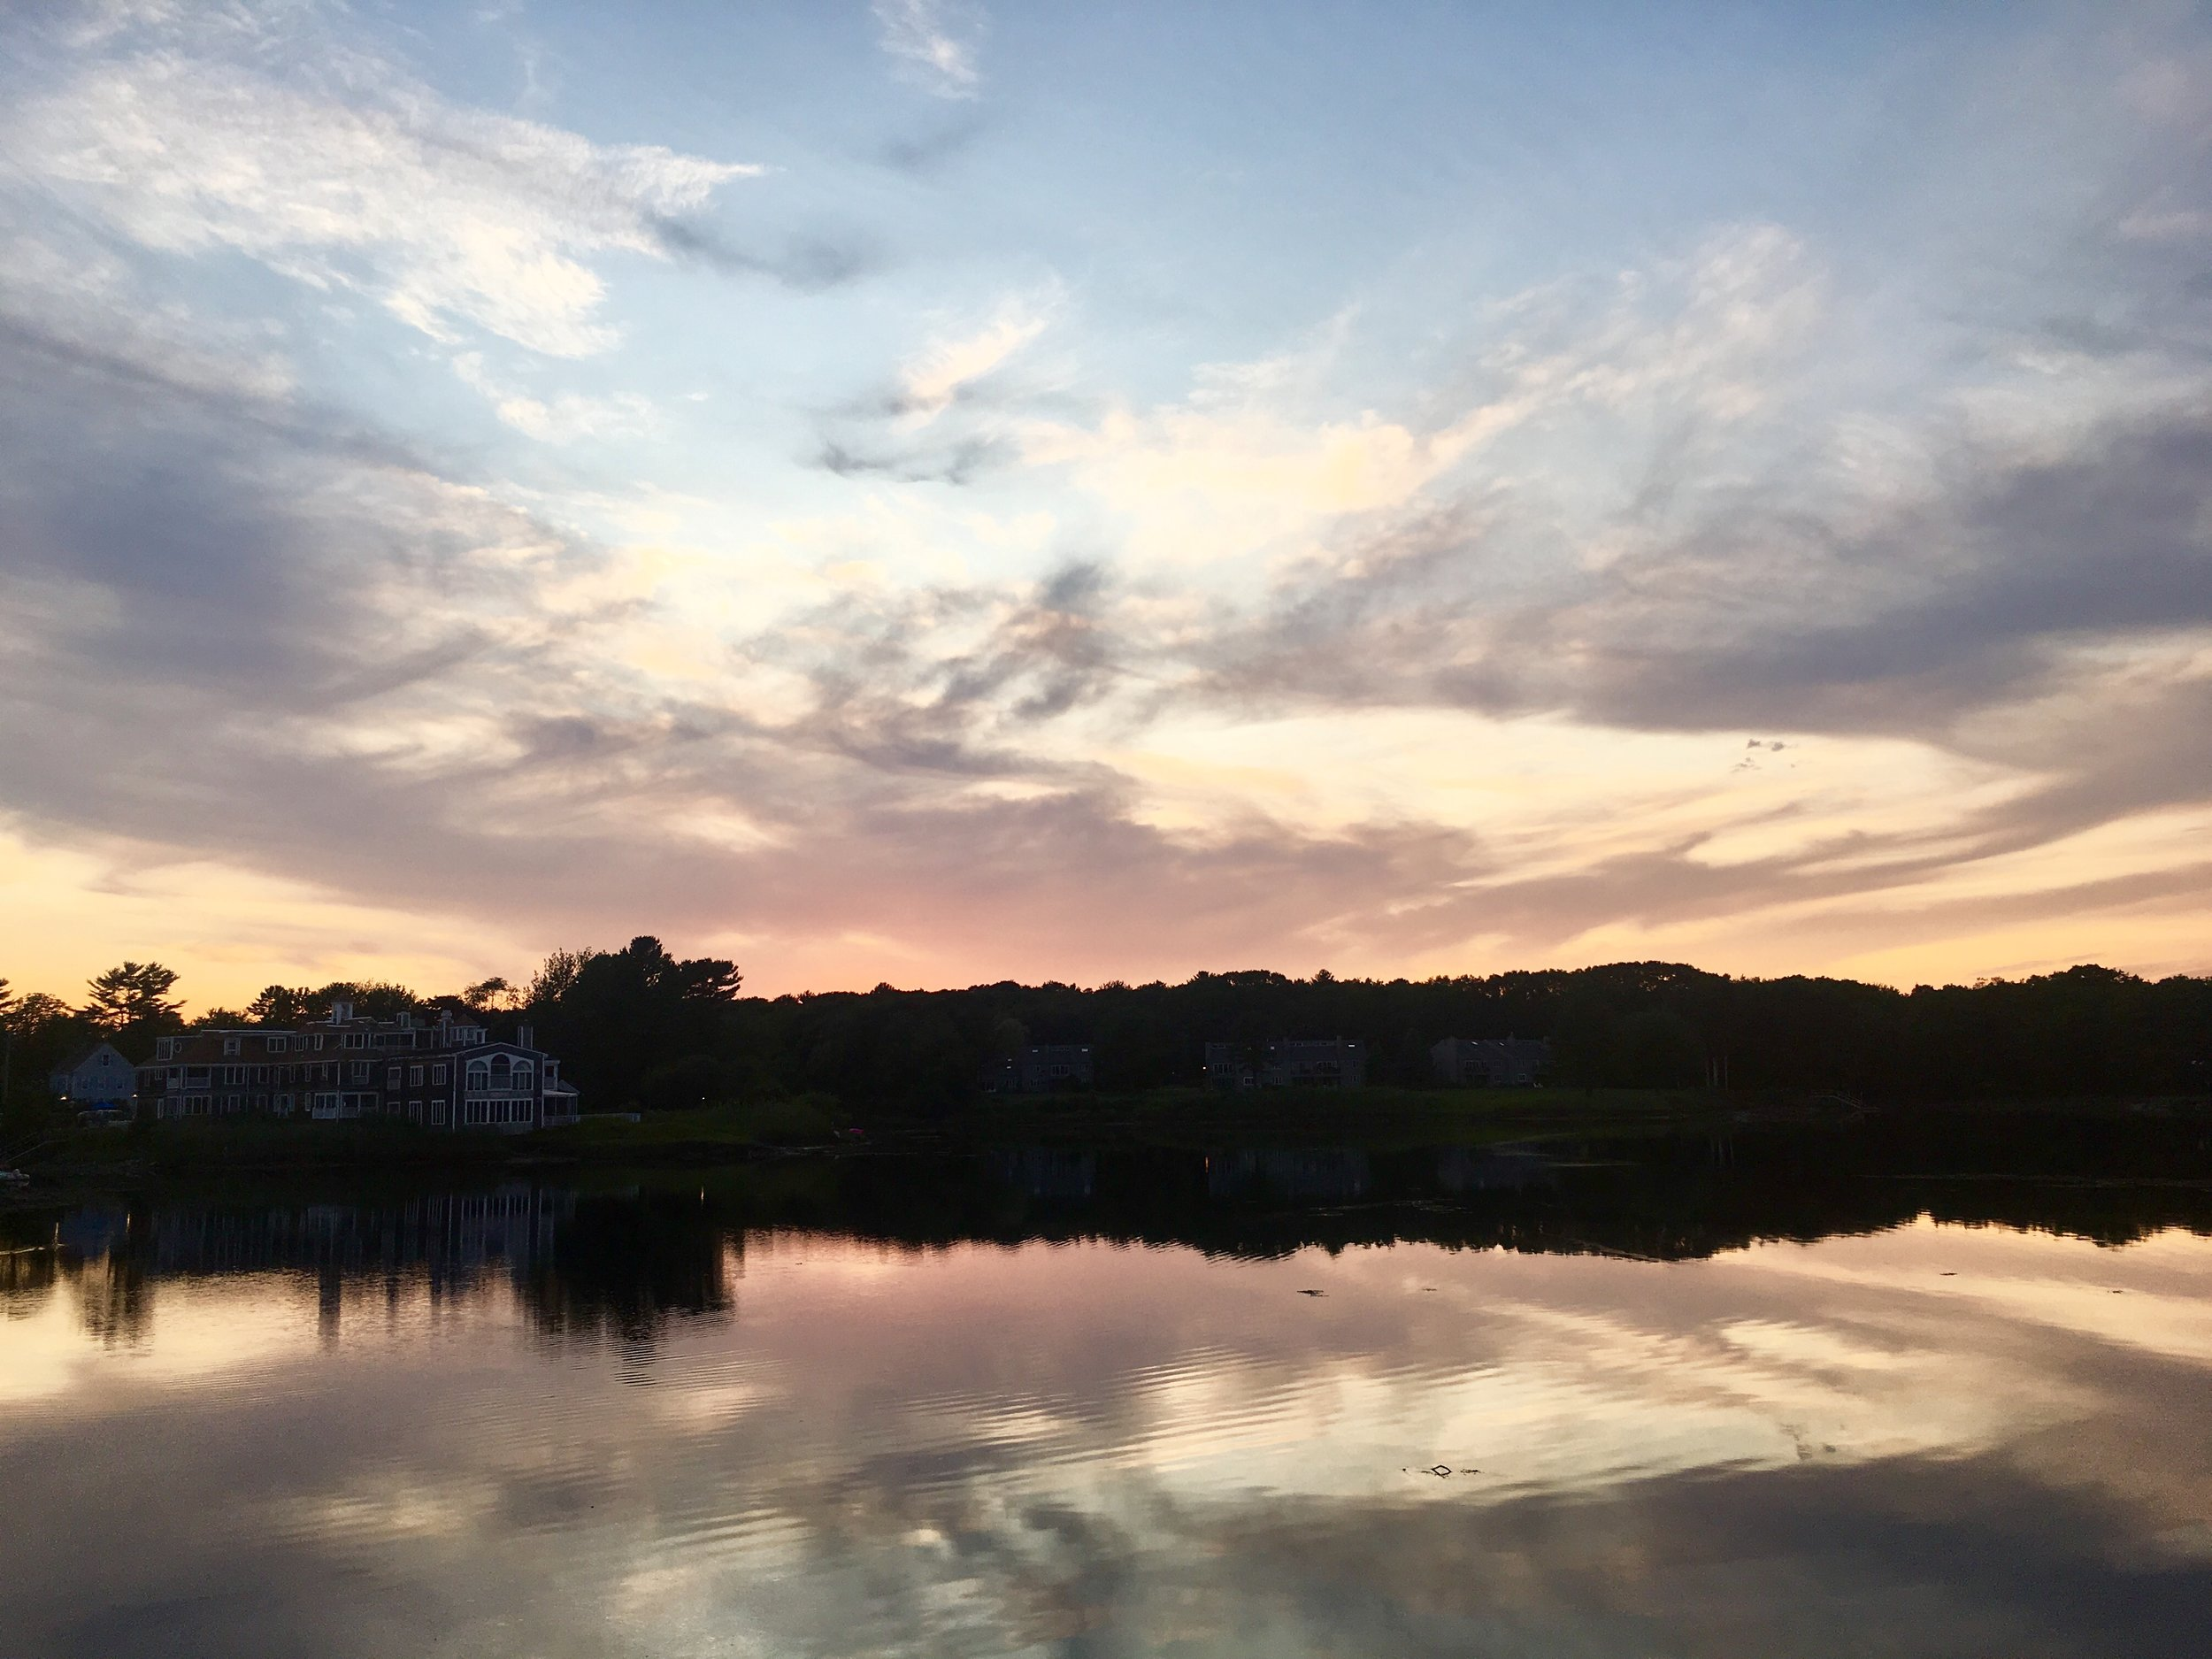 Where to stay and what to do in Kennebunkport, Maine #maine #travel #missfunctionalmoney